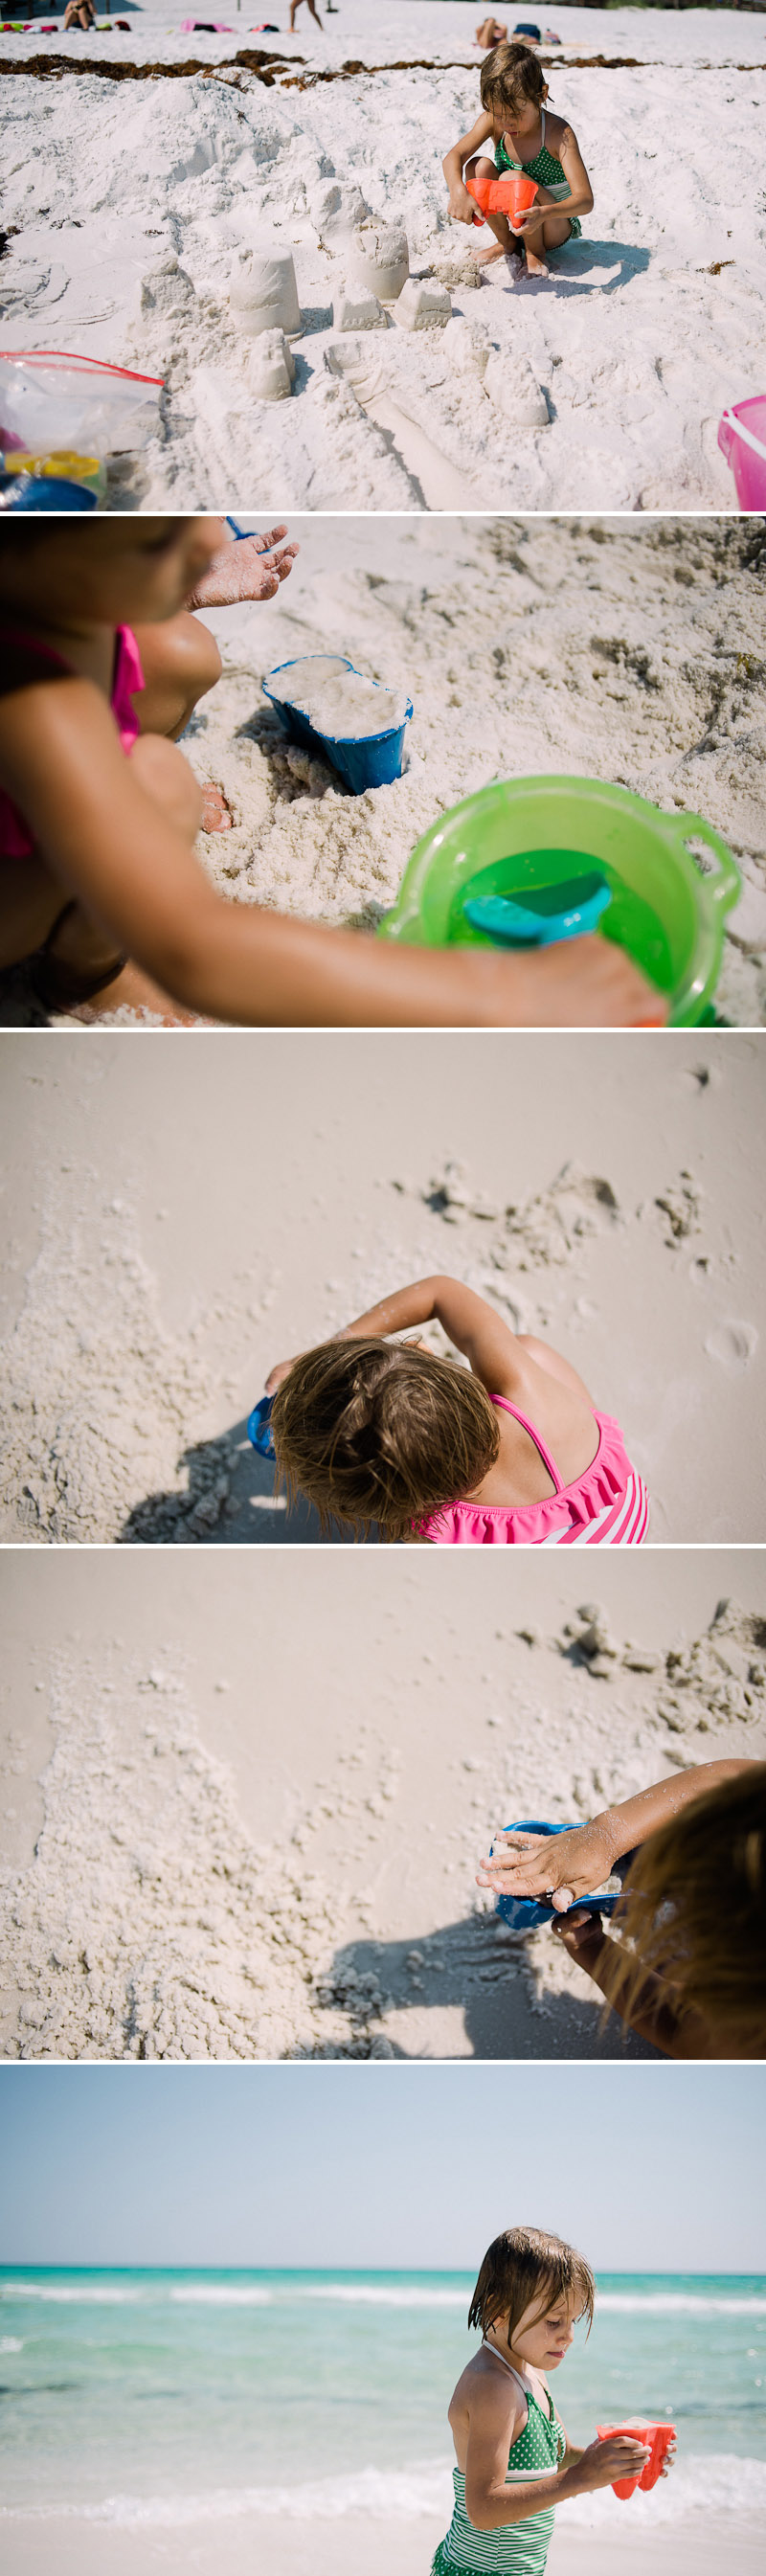 Kids playing in the sand on a Destin beach.